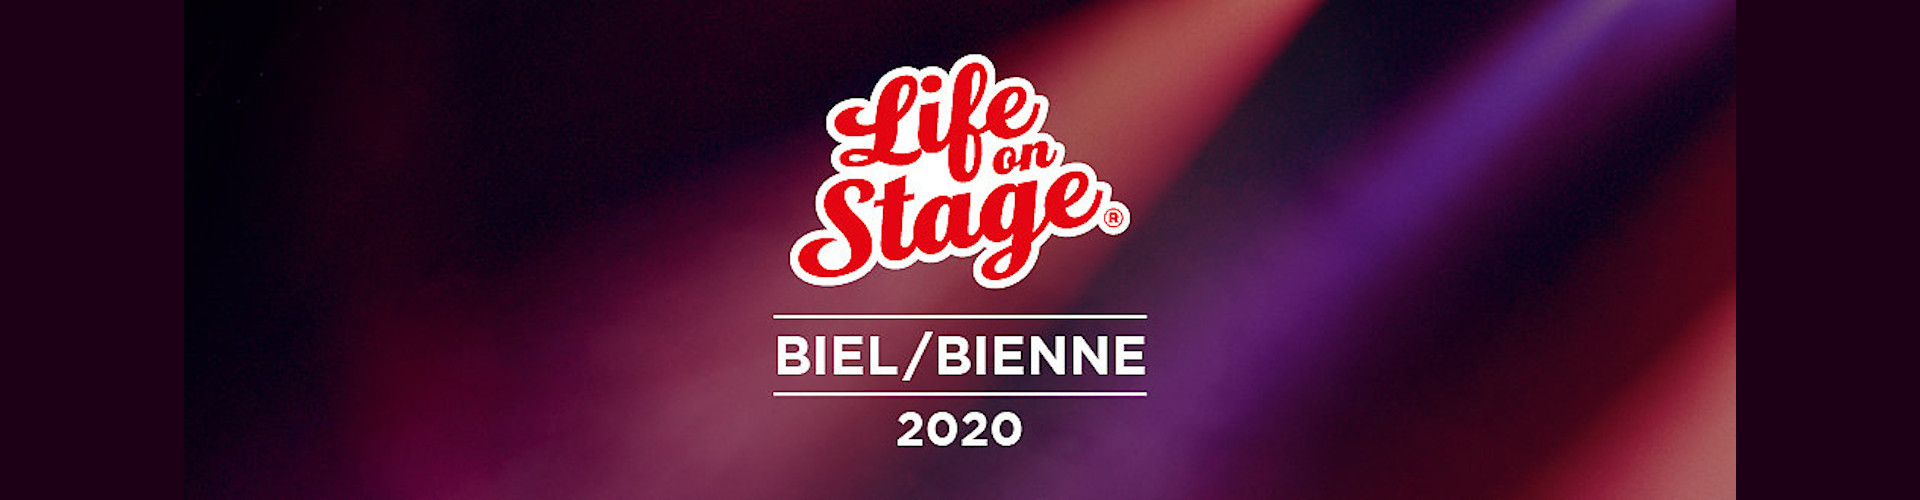 Life on Stage Biel/Bienne